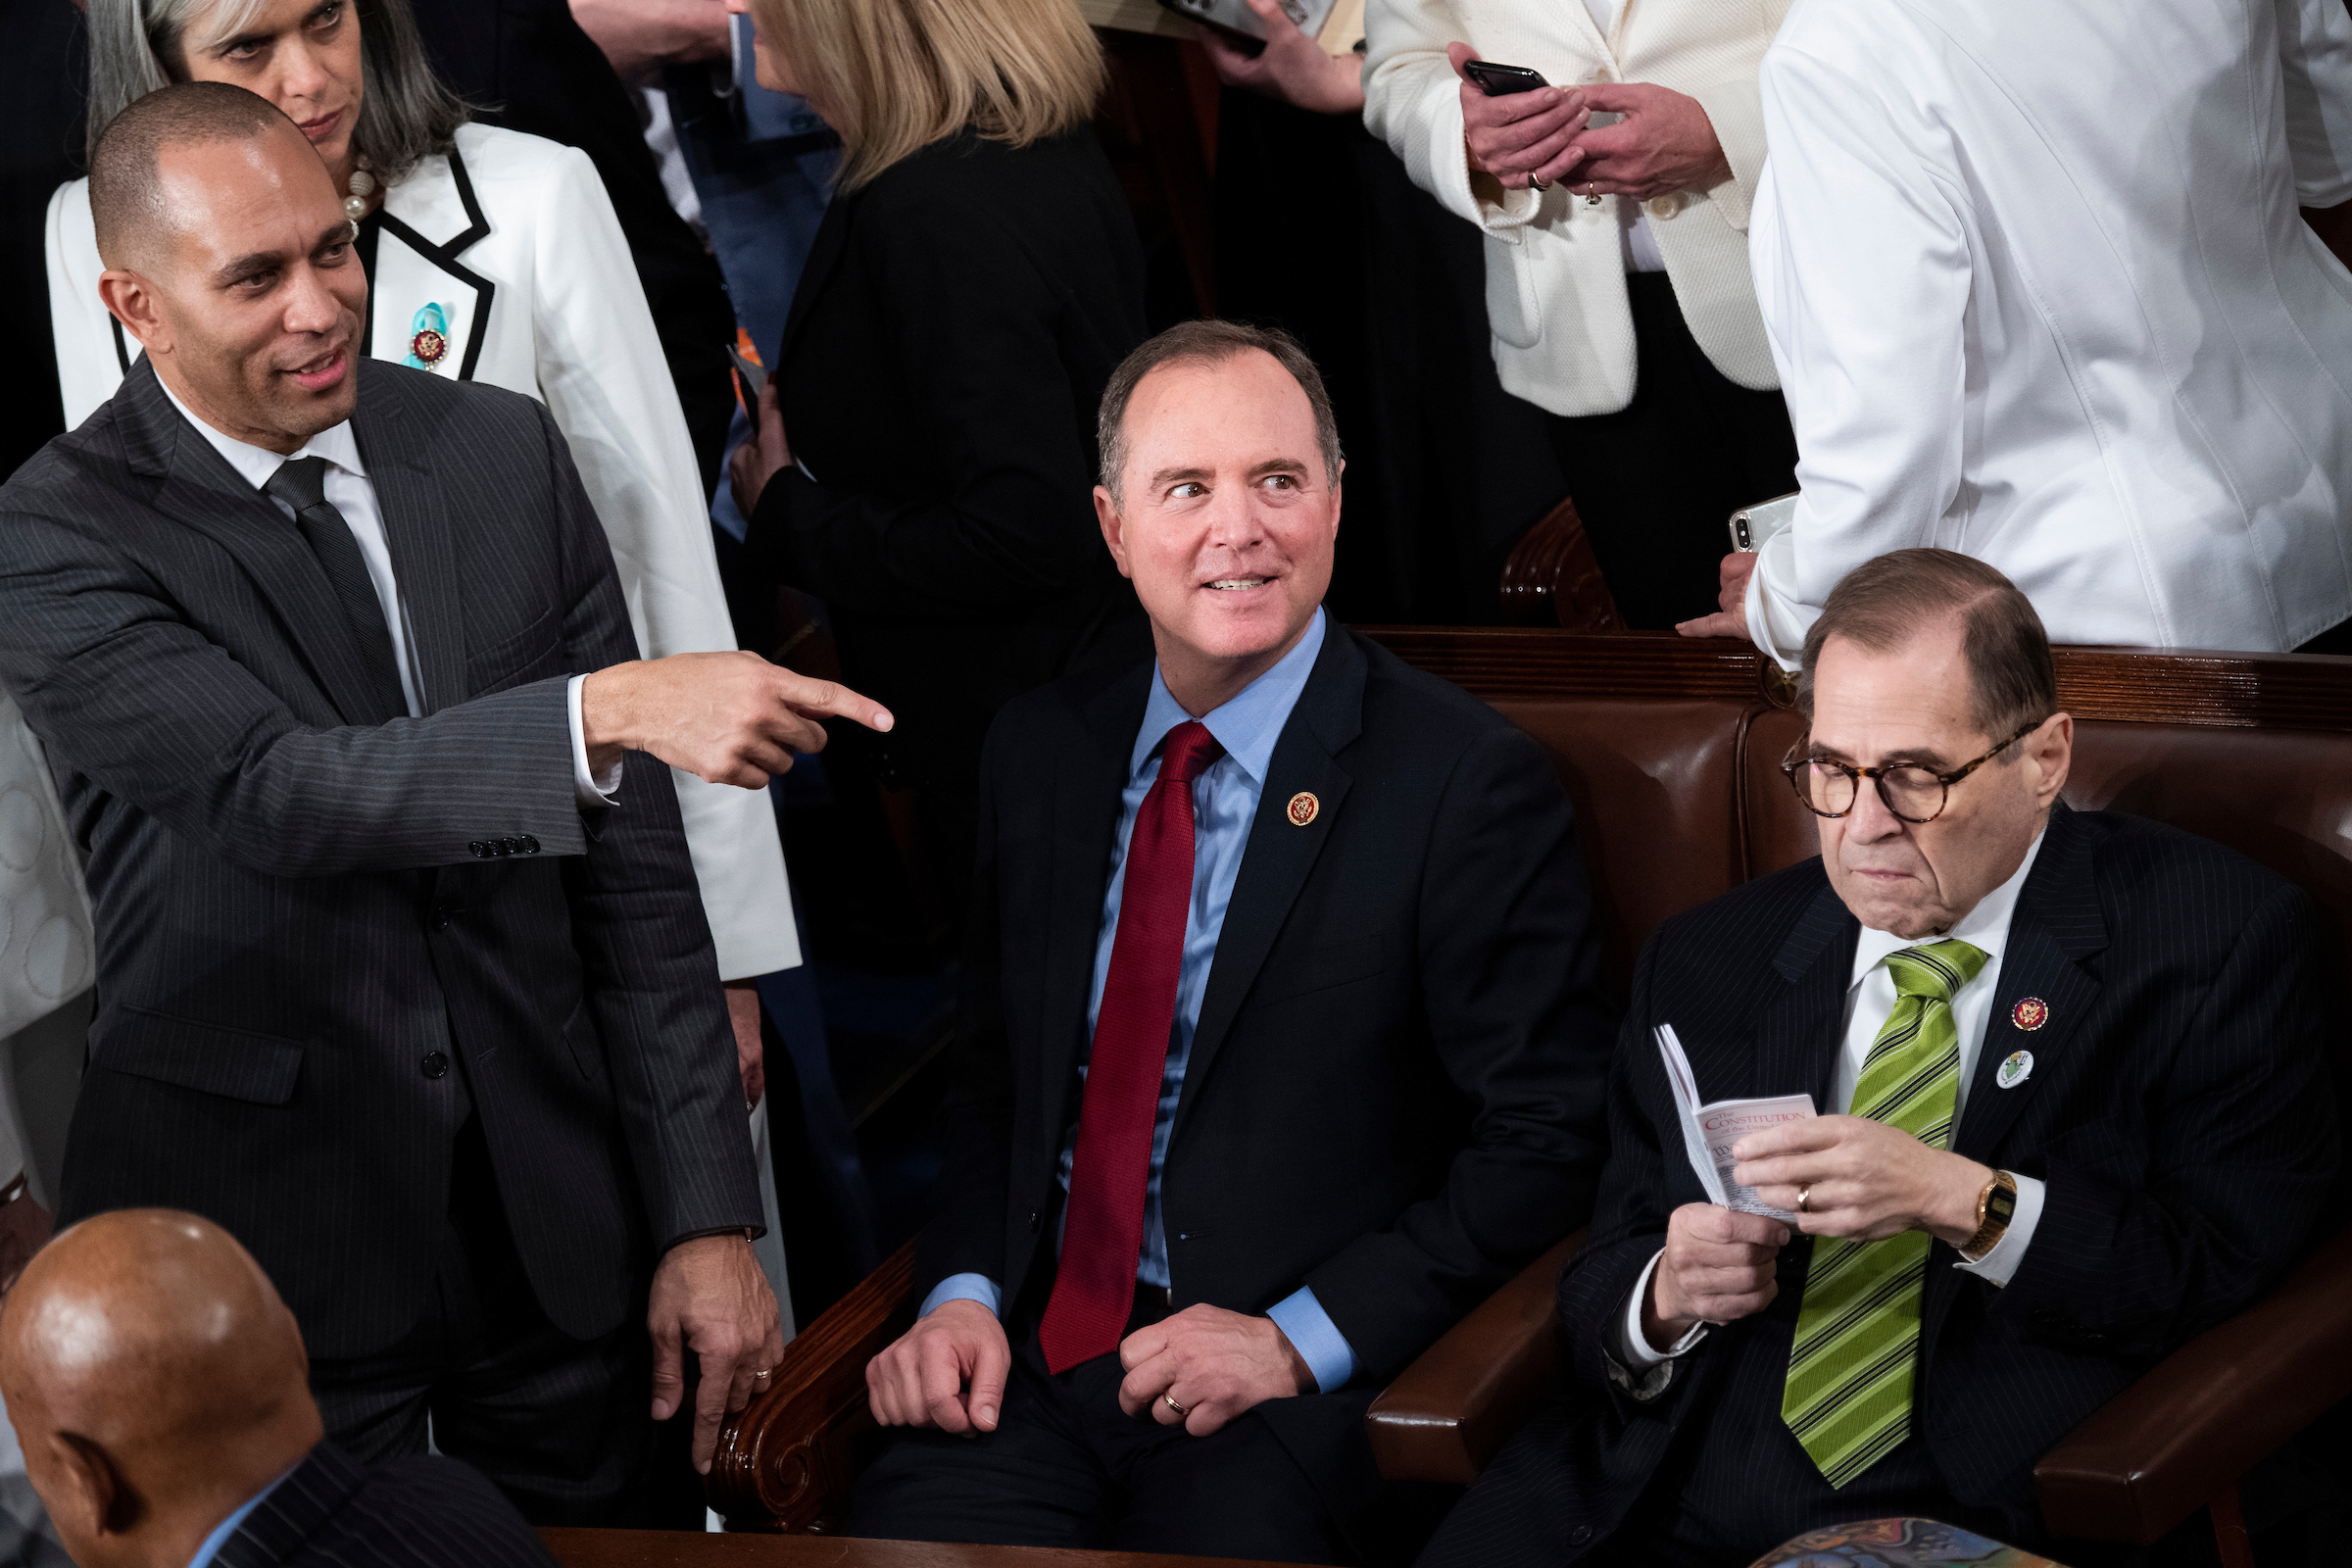 UNITED STATES - FEBRUARY 04: Impeachment managers from left, Reps. Hakeem Jeffries, D-N.Y., Adam Schiff, D-Calif., and Jerold Nadler, D-N.Y., are seen before President Donald Trump's State of the Union address in the House Chamber on Tuesday, February 4, 2020. (Photo By Tom Williams/CQ Roll Call)